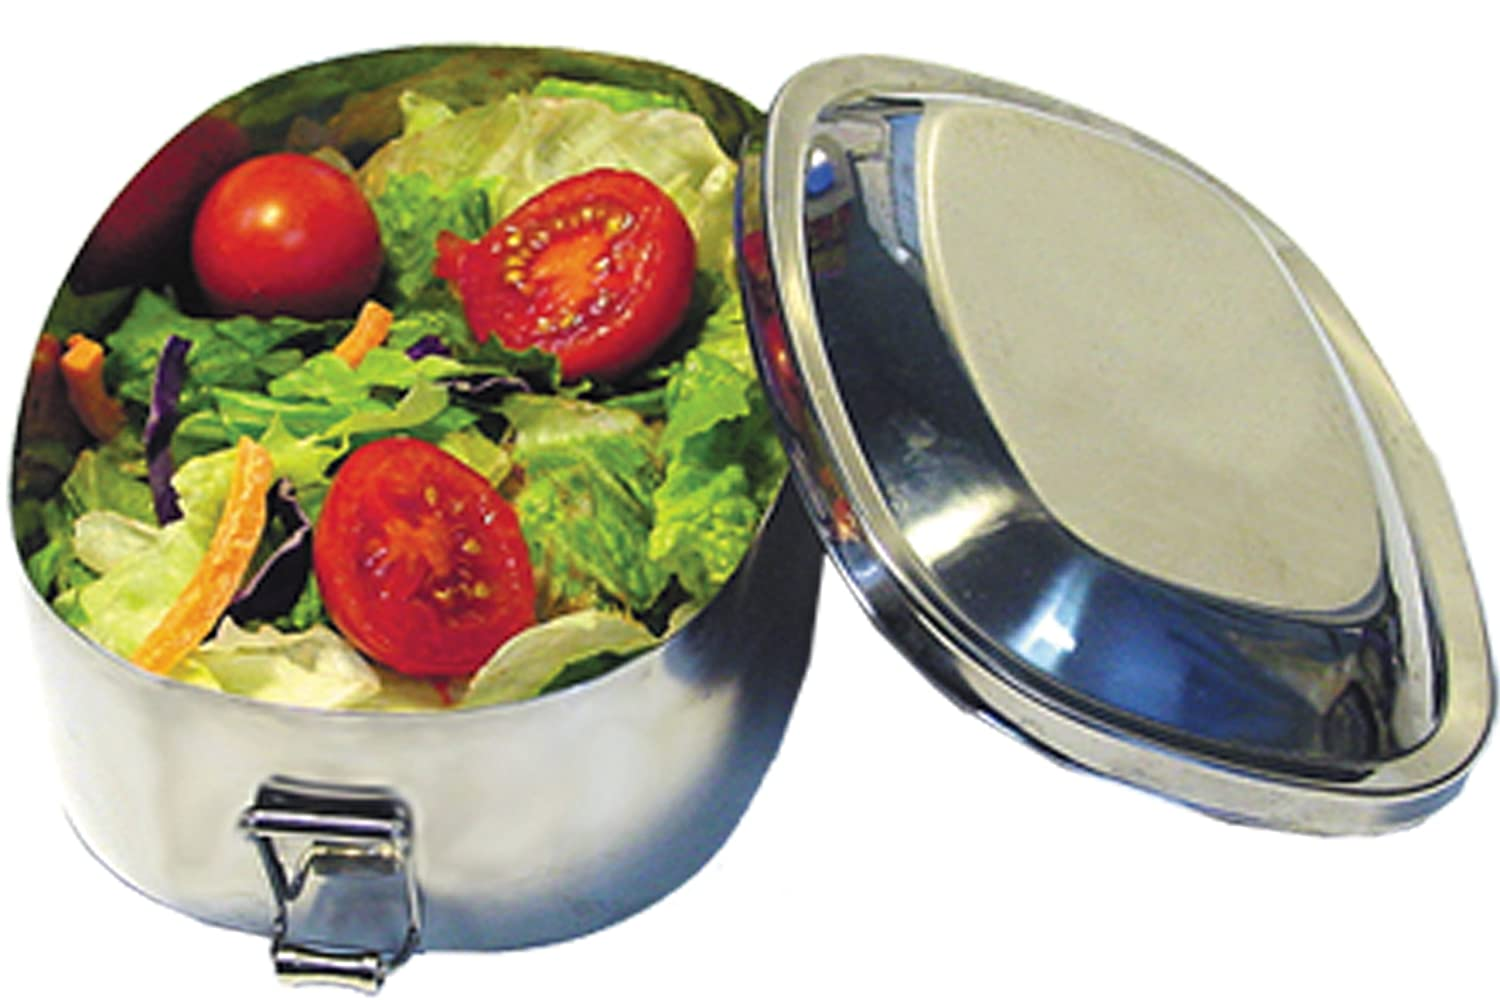 Wave Enviro Stainless Steel Food Container New Wave Enviro SS Cont